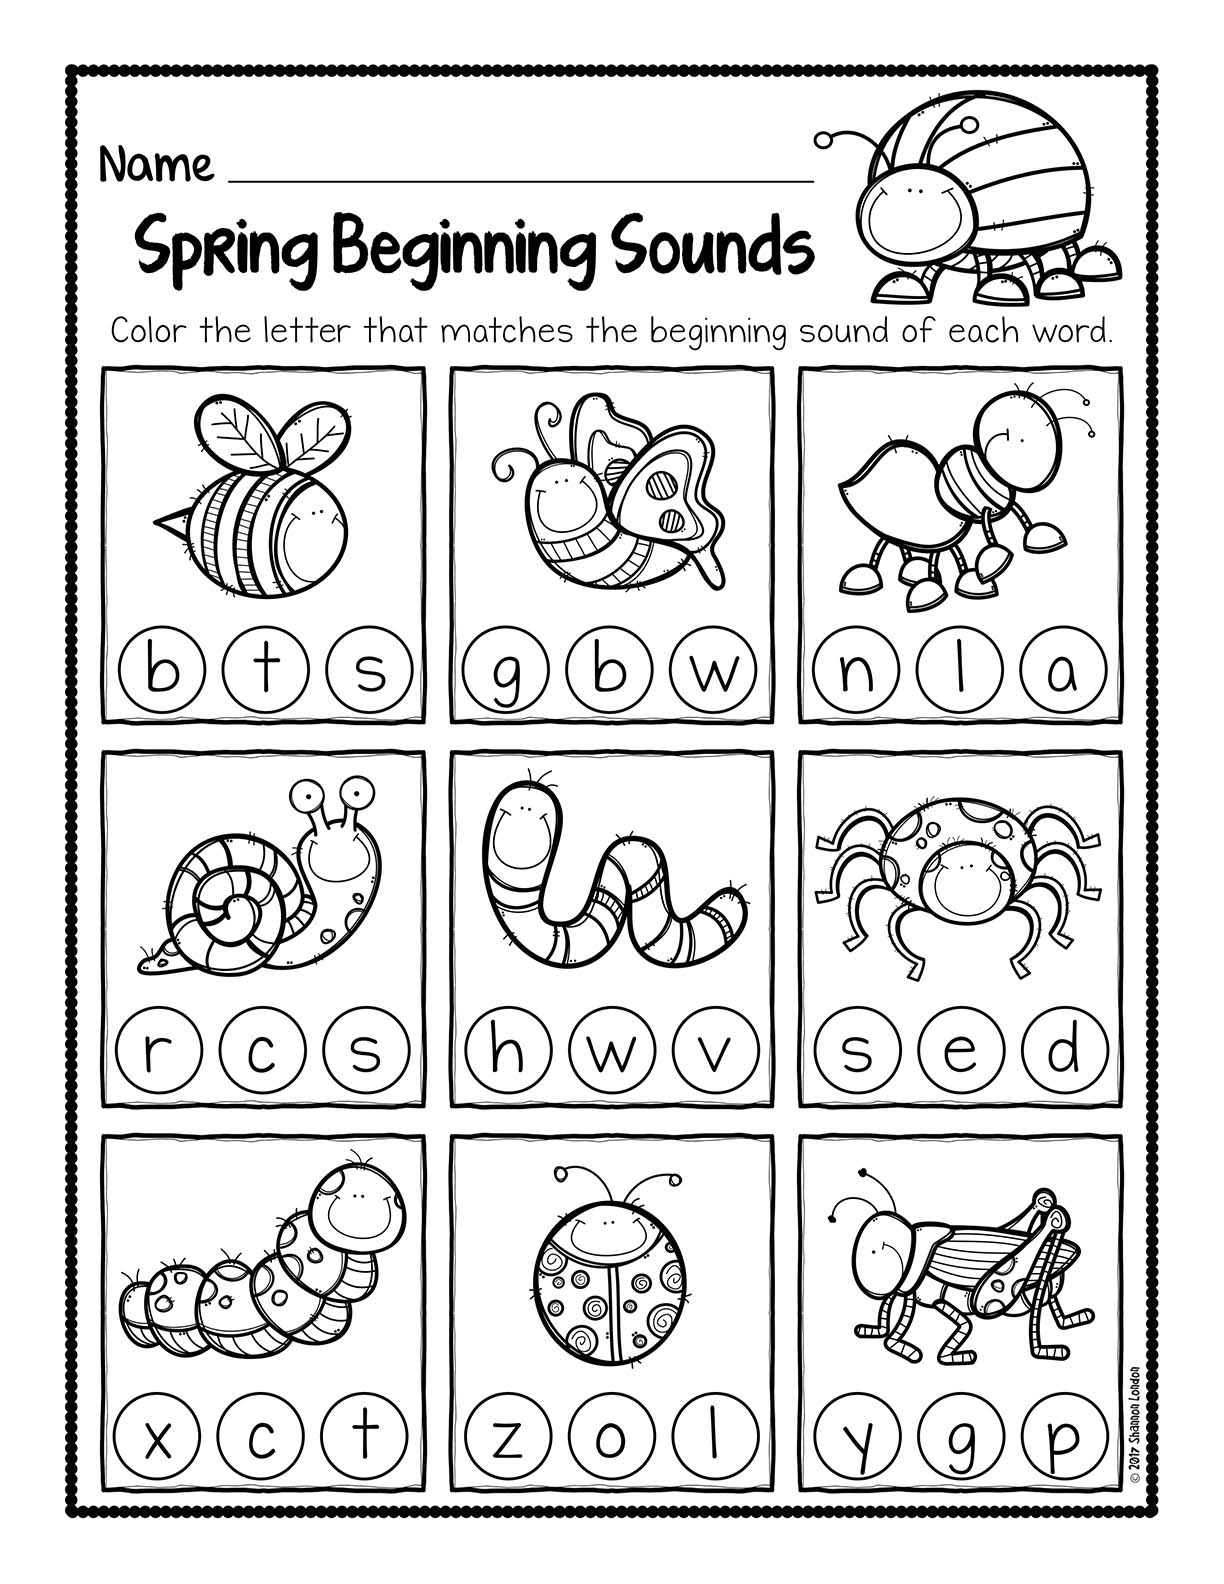 Spring Beginning Sound Worksheets 001